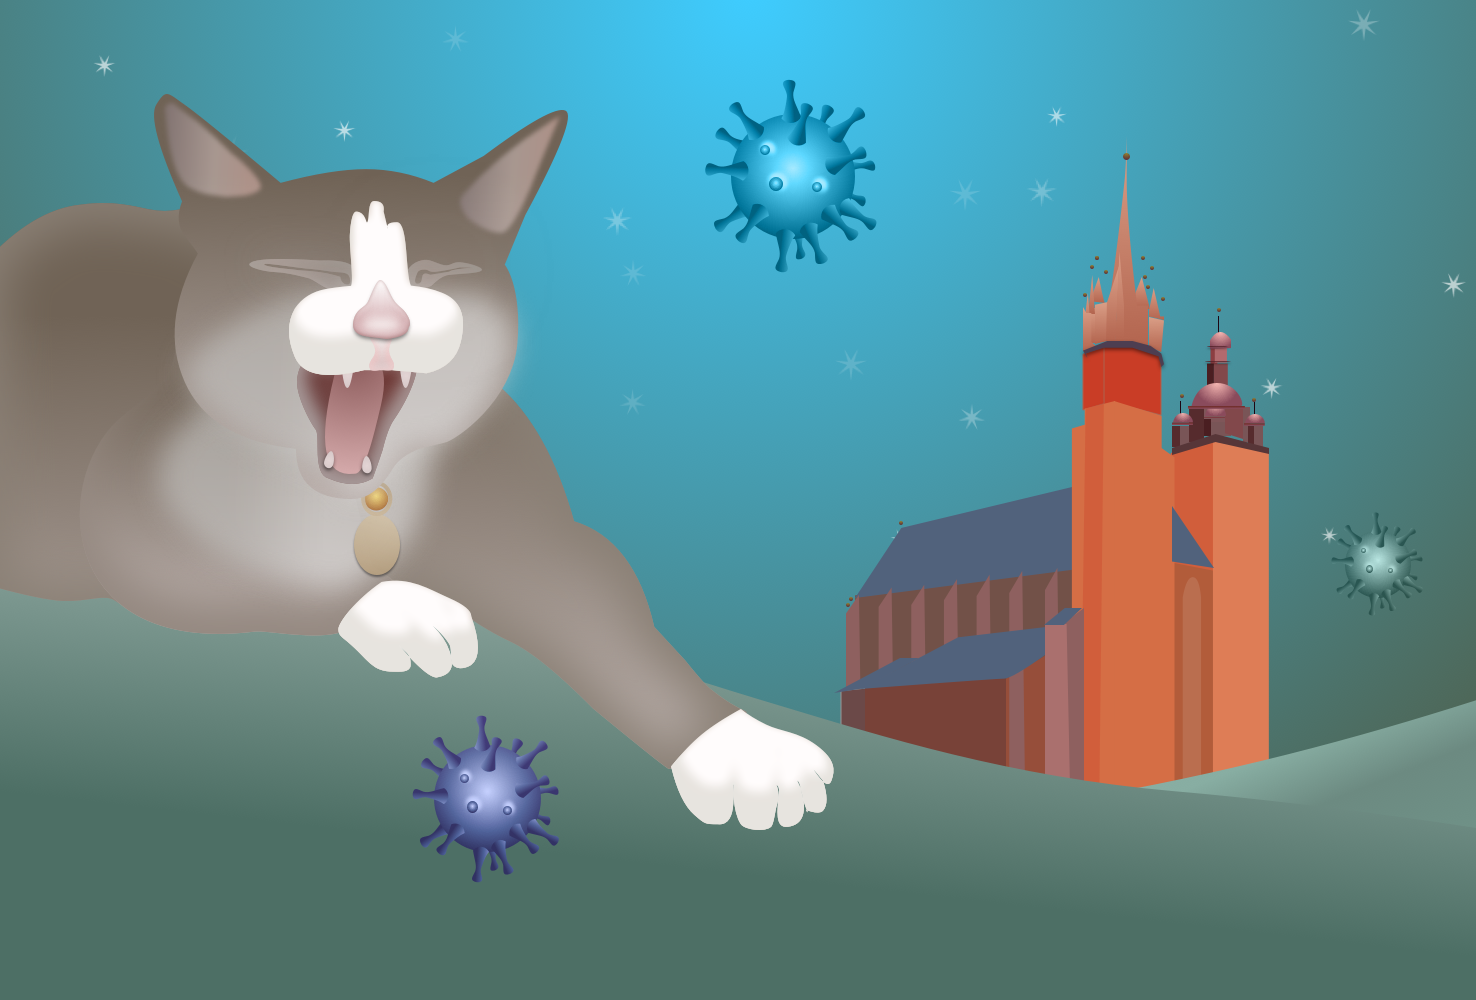 Polish cats 'Off-Duty' during pandemic